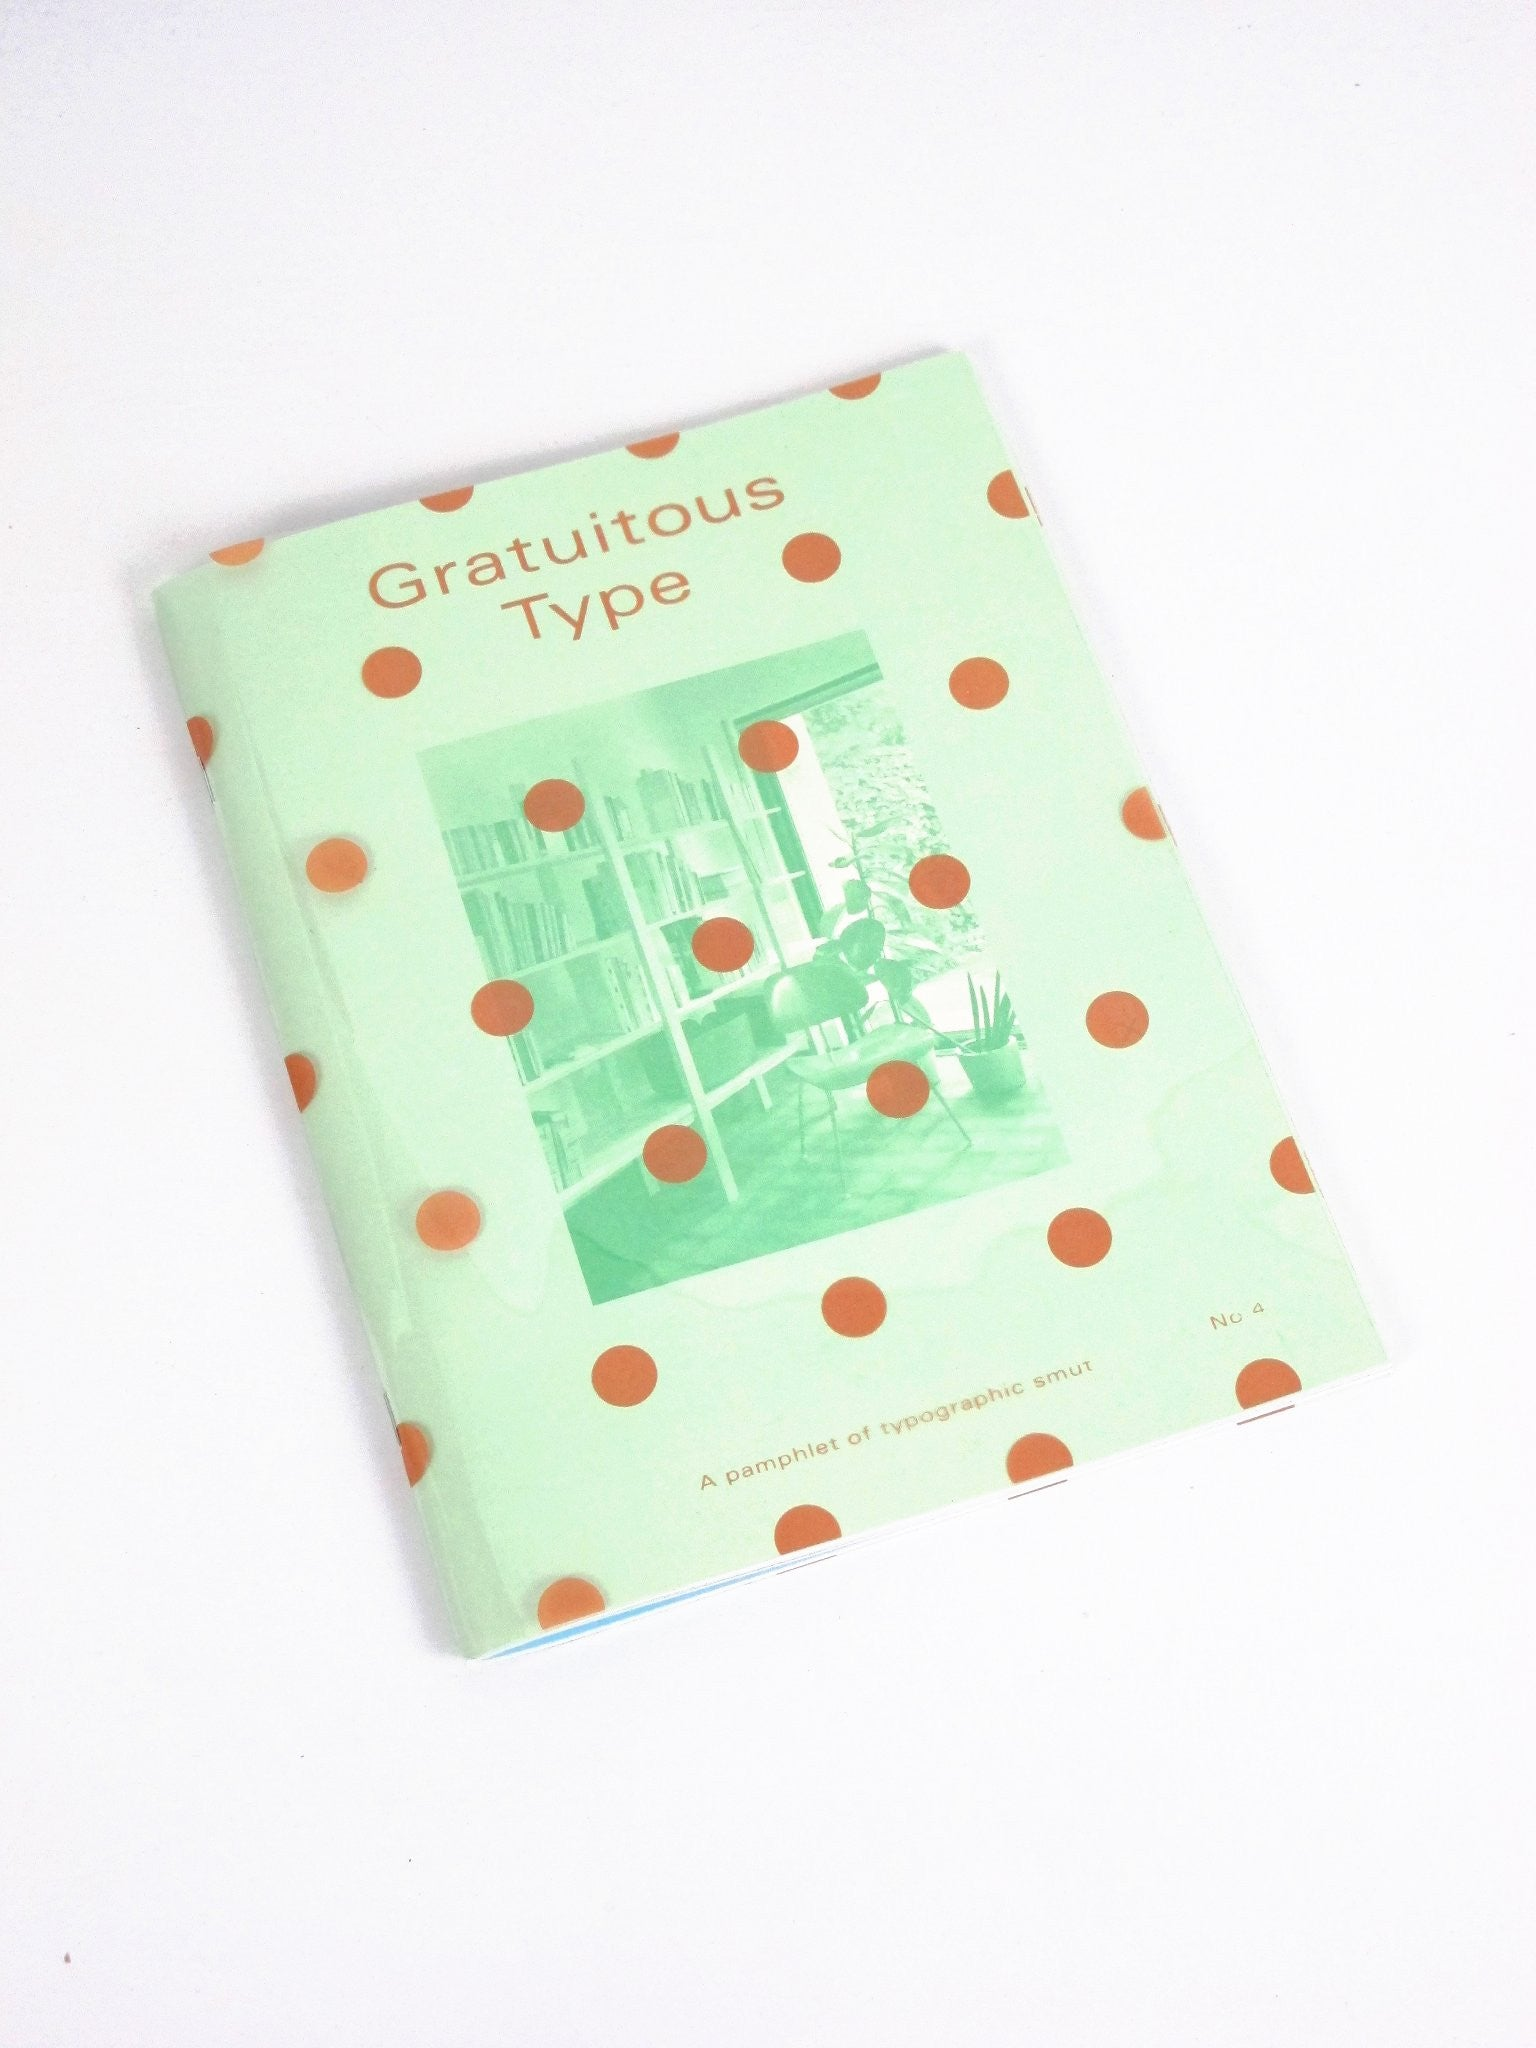 Gratuitous Type Issue 4